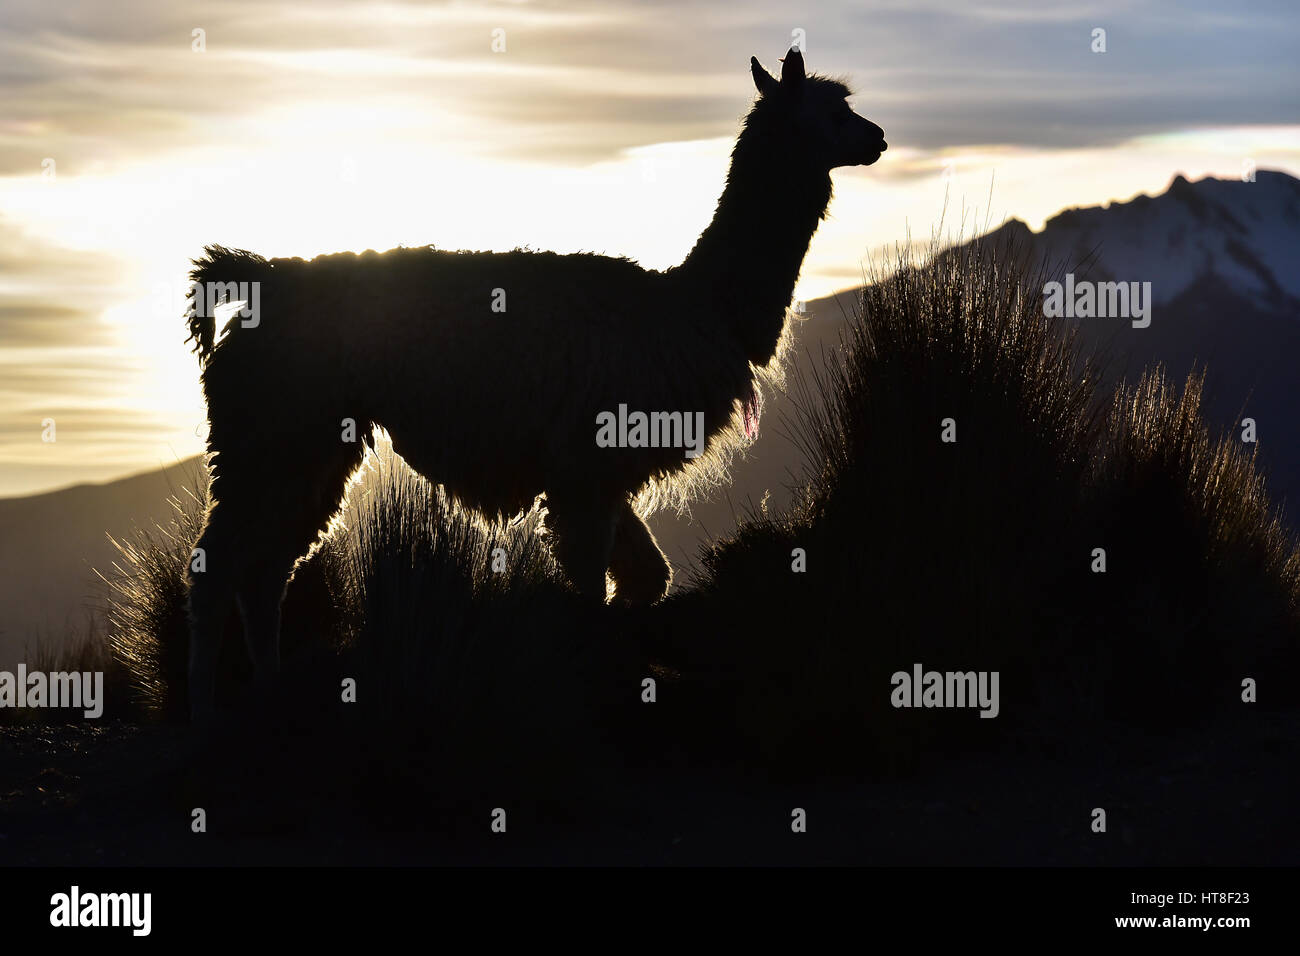 Llama (Lama glama) as a silhouette against the light in front of mountain, evening light, in Cusco, Andes, Peru - Stock Image